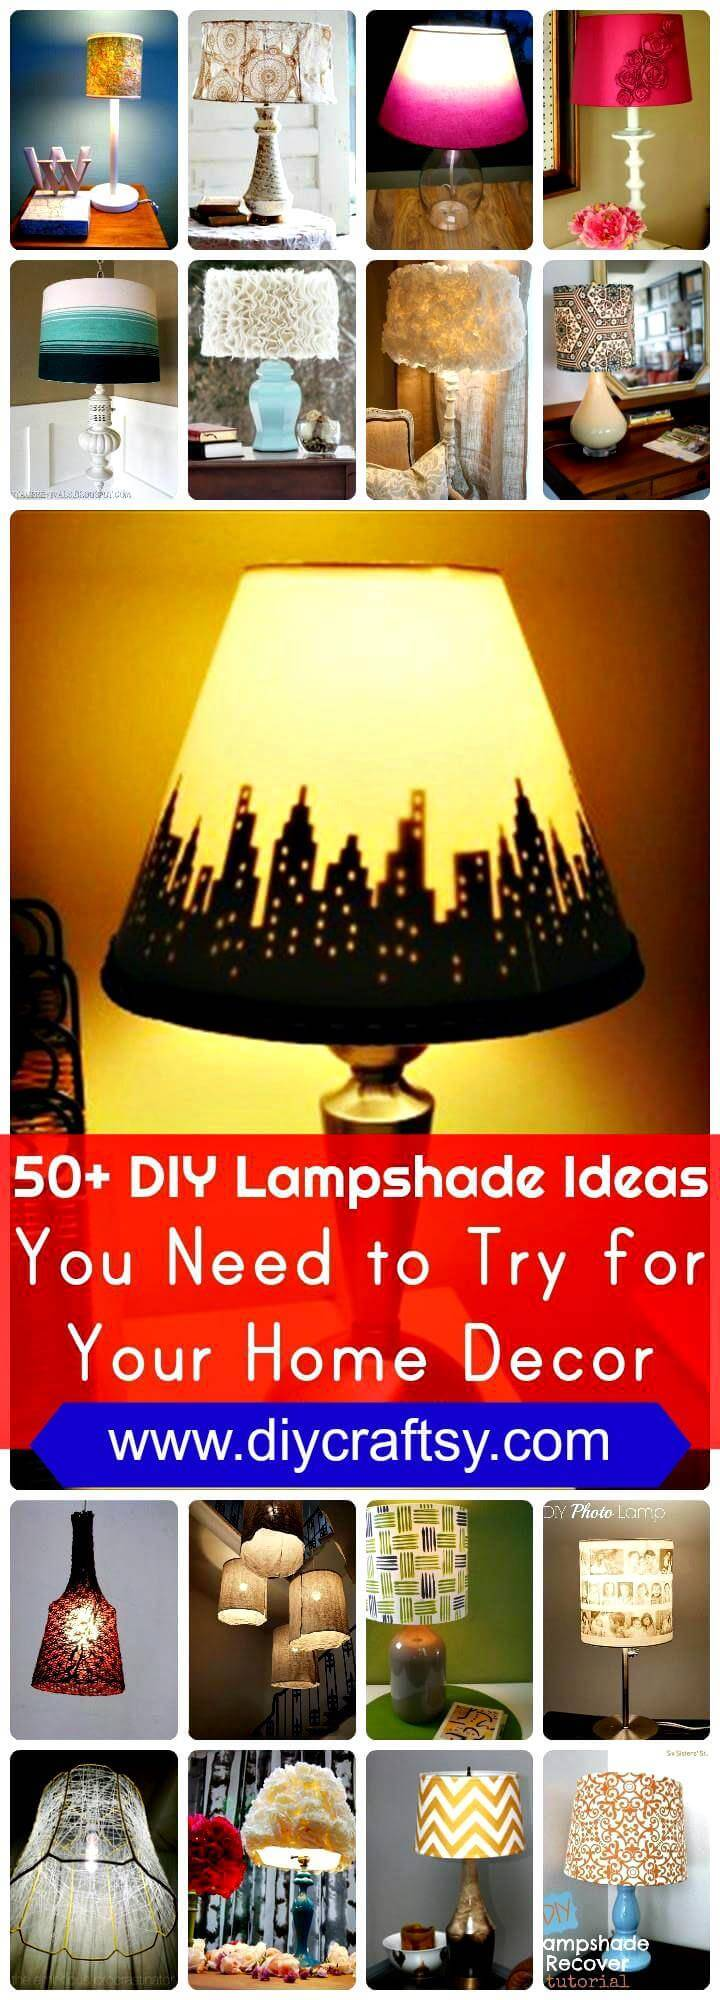 50+ DIY Lampshade Ideas You Need to Try for Your Home Decor